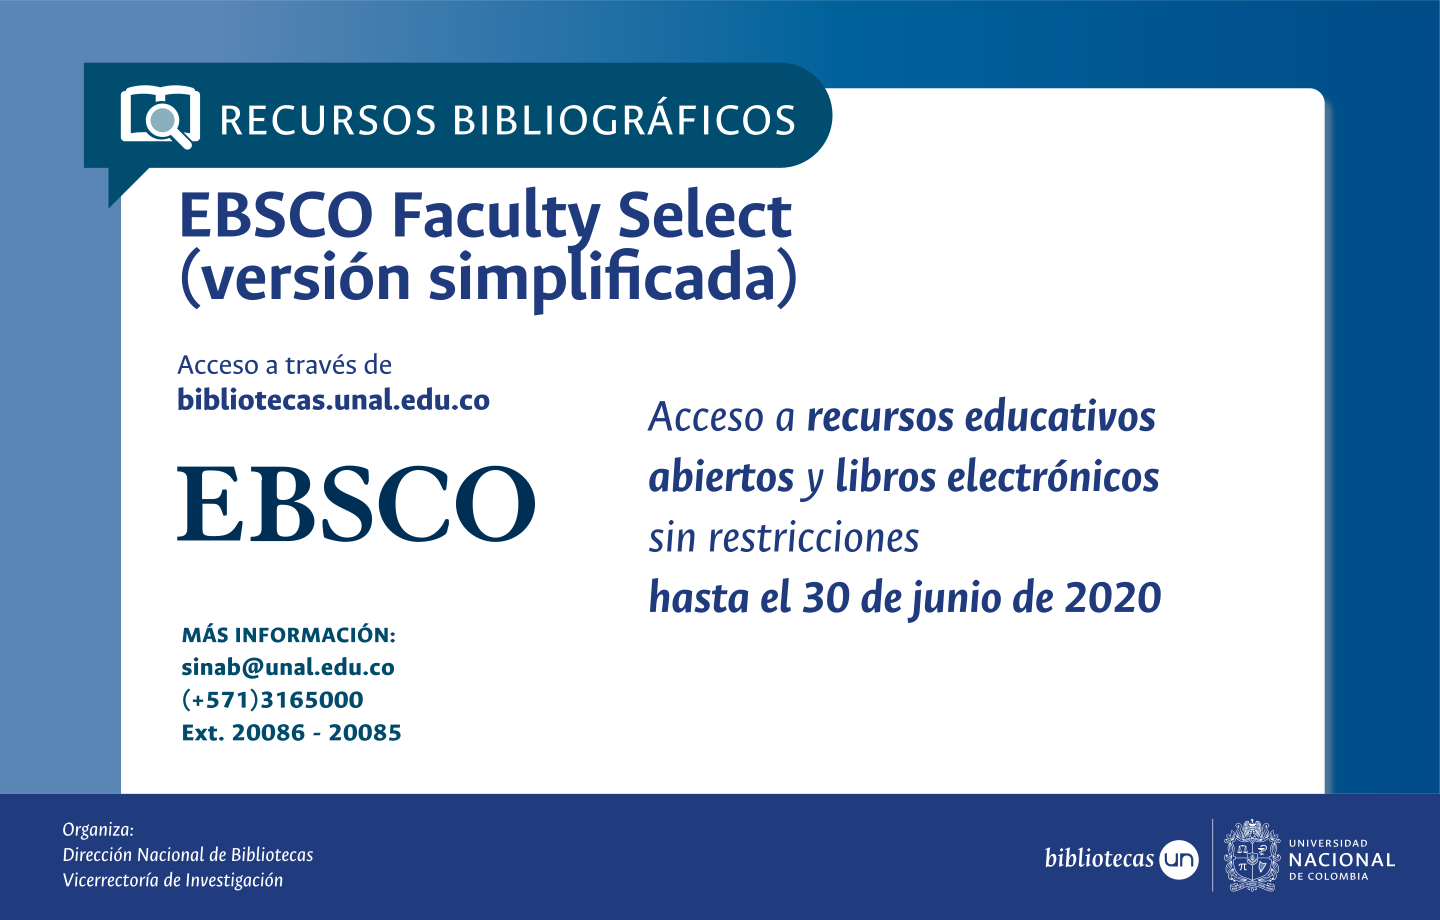 EBSCO Faculty Select